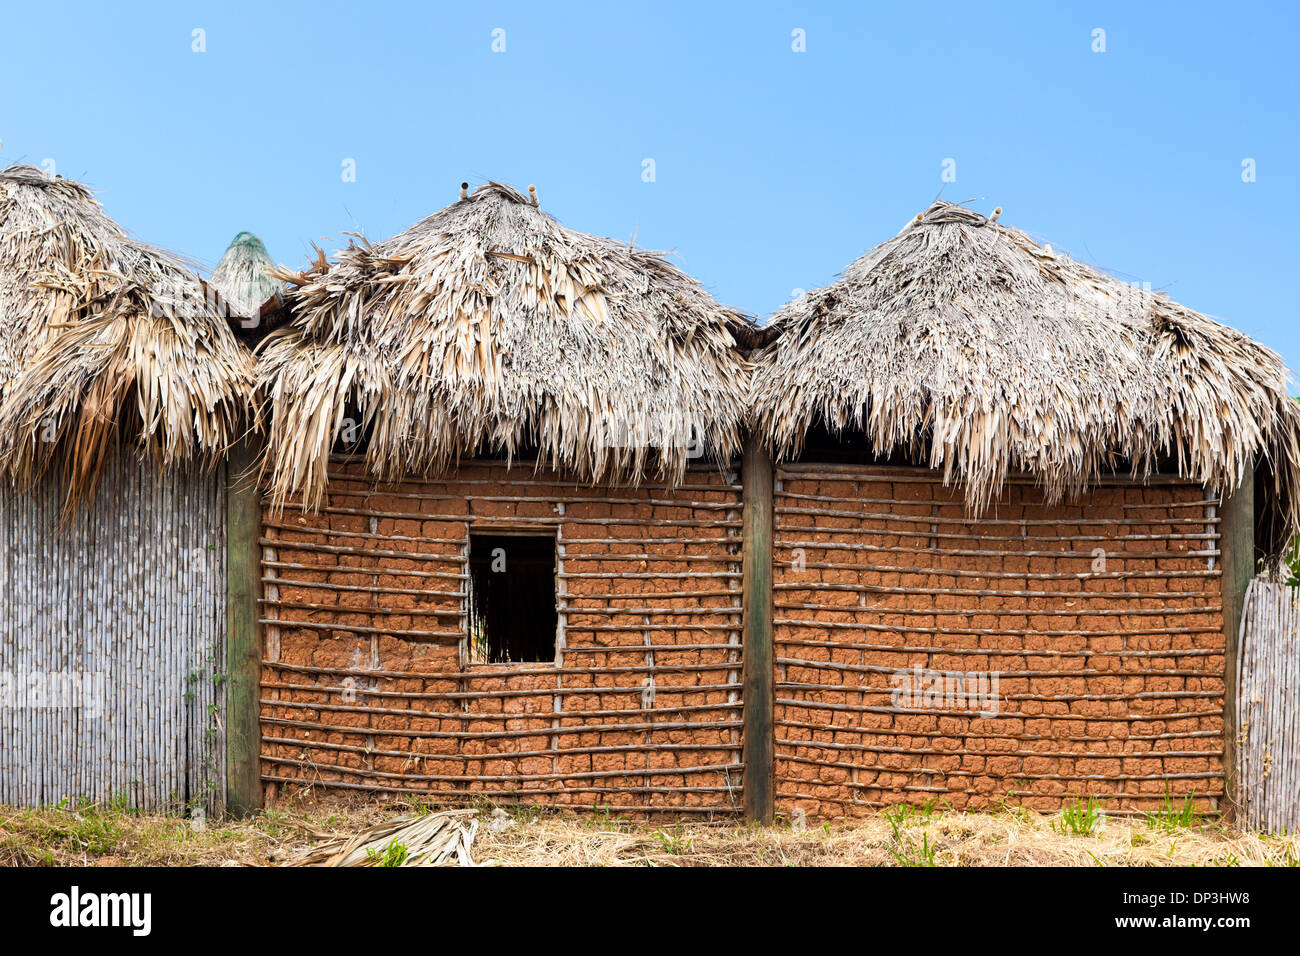 Traditional Garifuna mud house with thatch roof - Stock Image